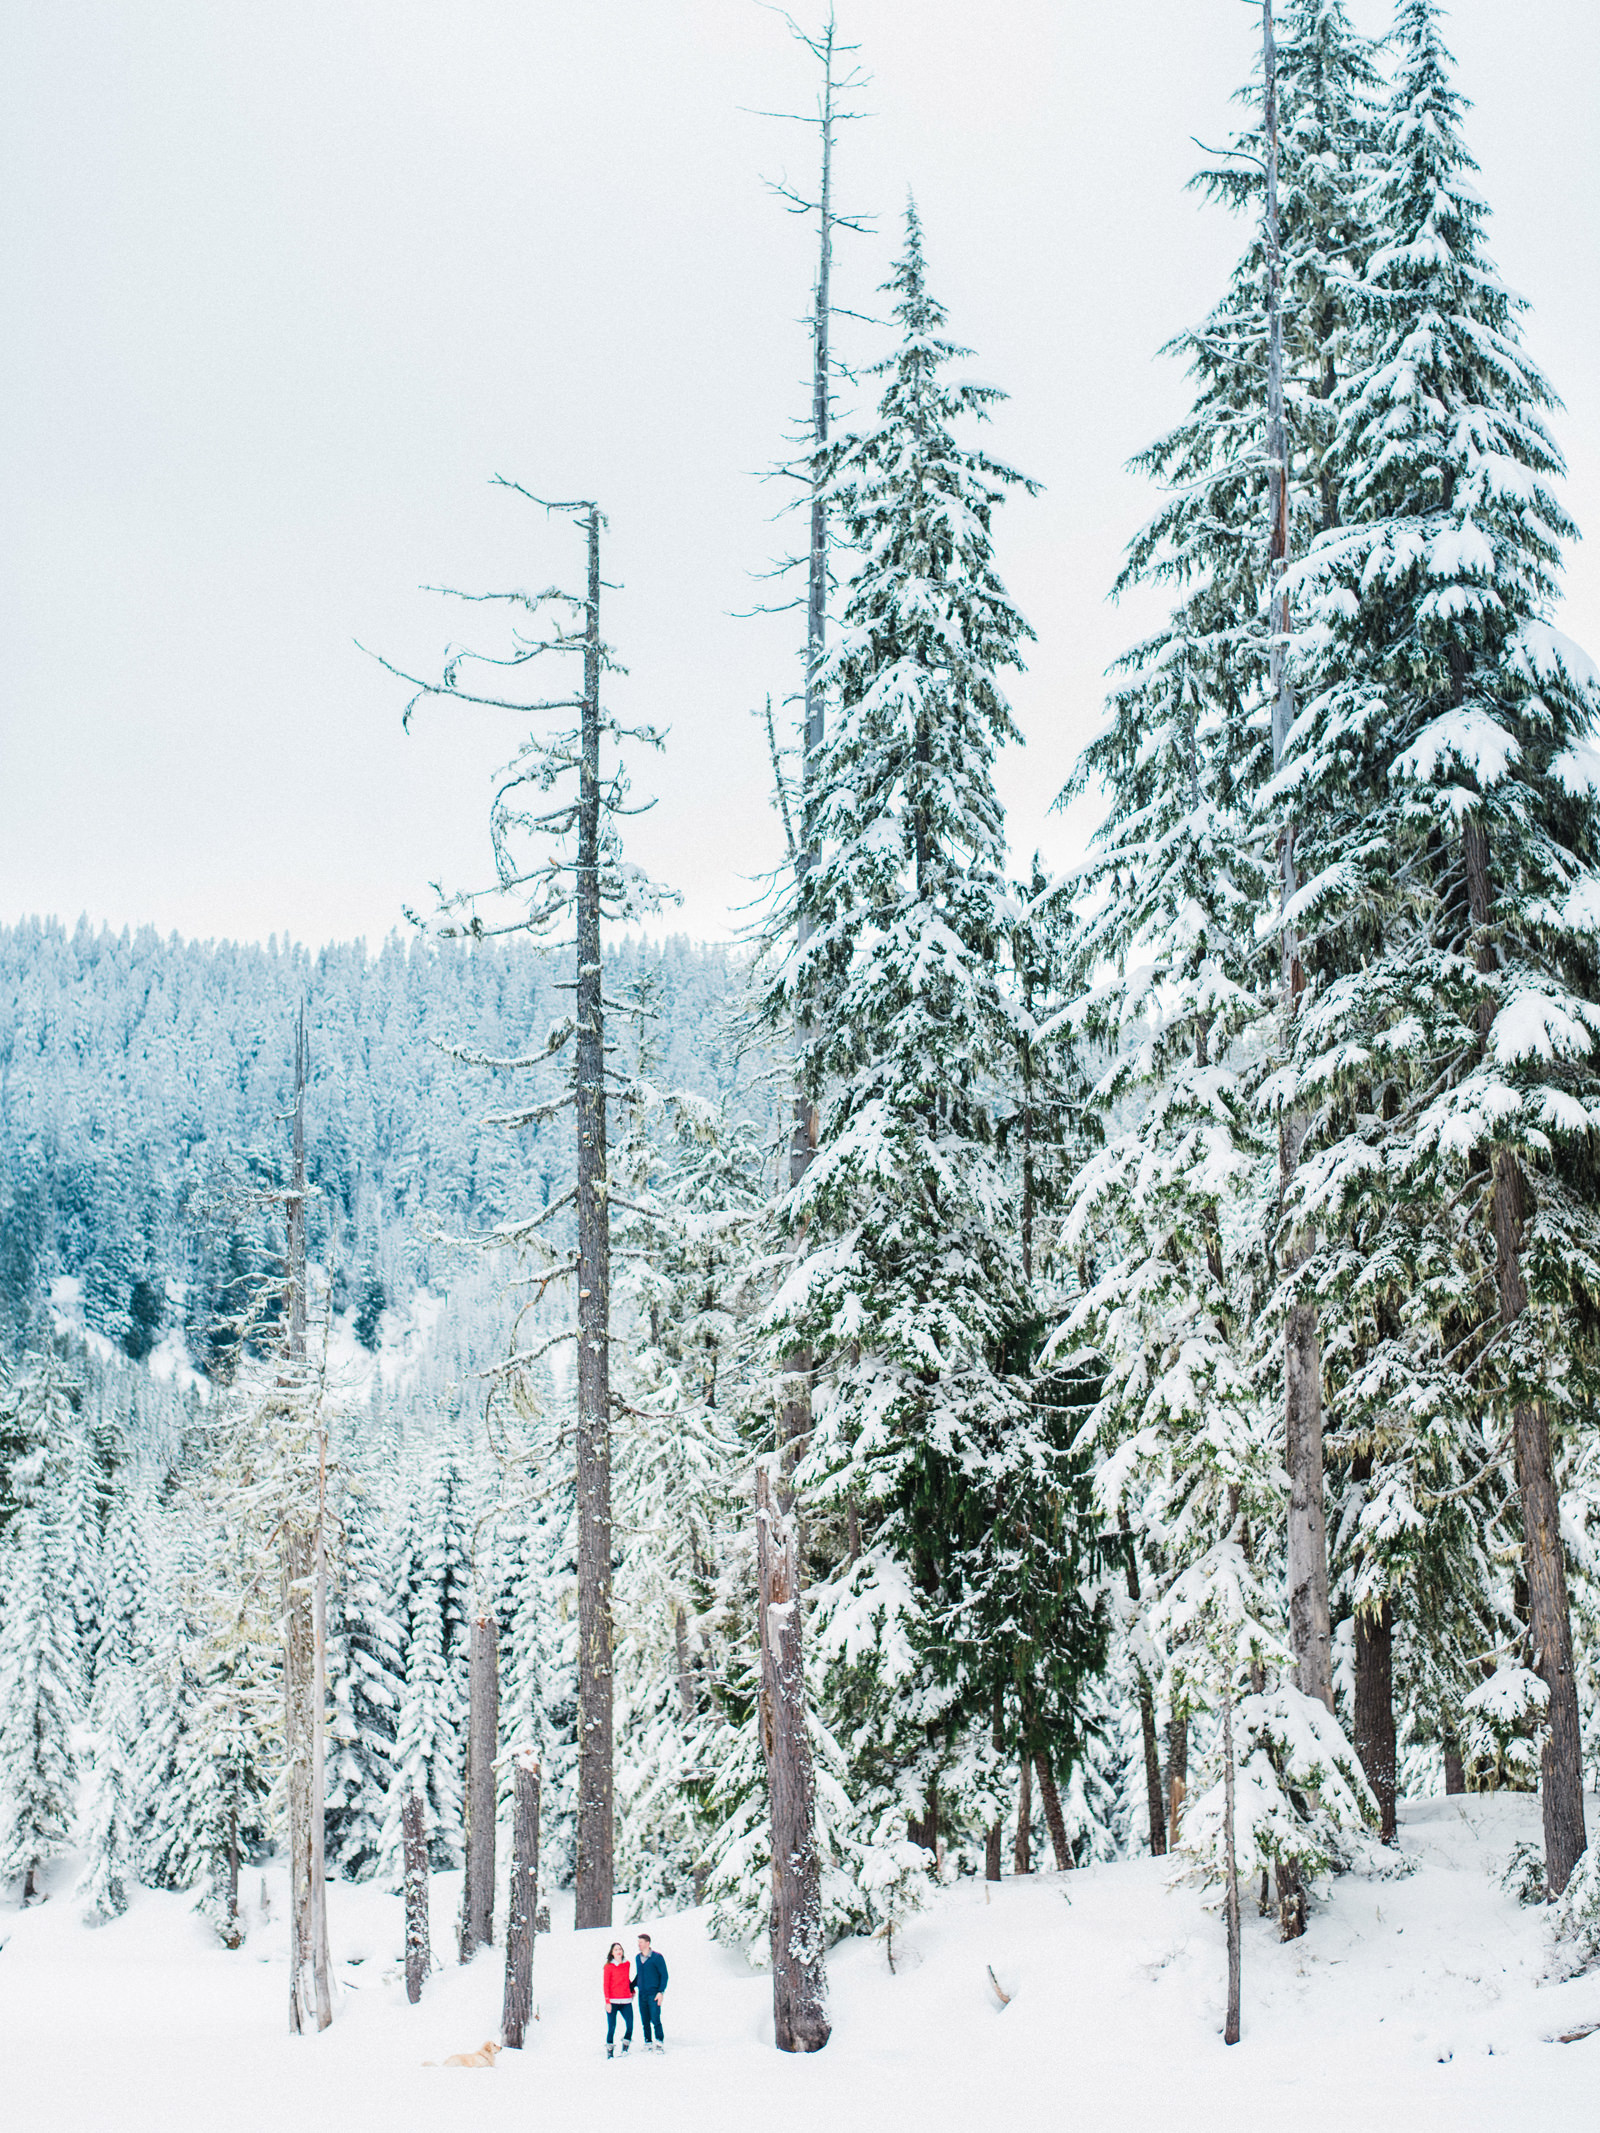 105-snowy-film-engagement-session-at-mount-rainier-by-fine-art-photographer-ryan-flynn.jpg